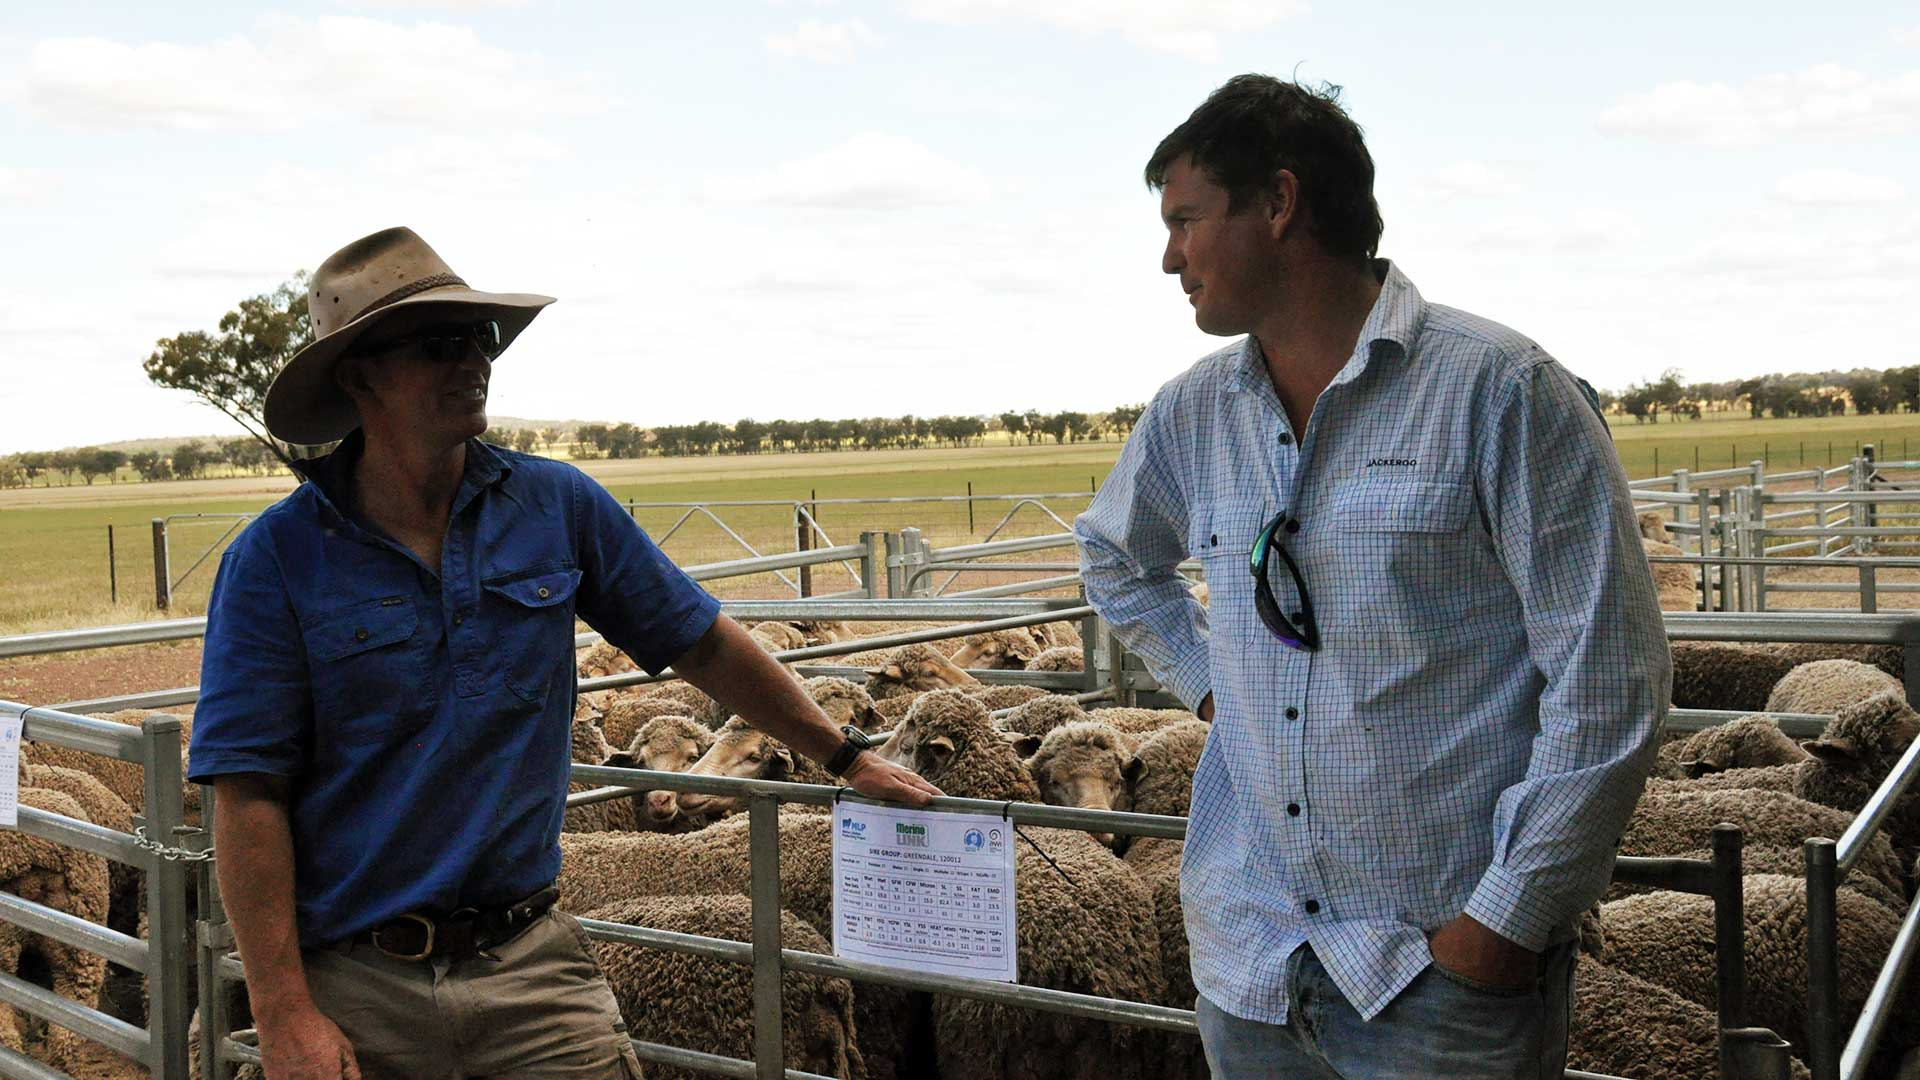 MerinoLink - Two Blokes & Sheep | Merino Superior Sires